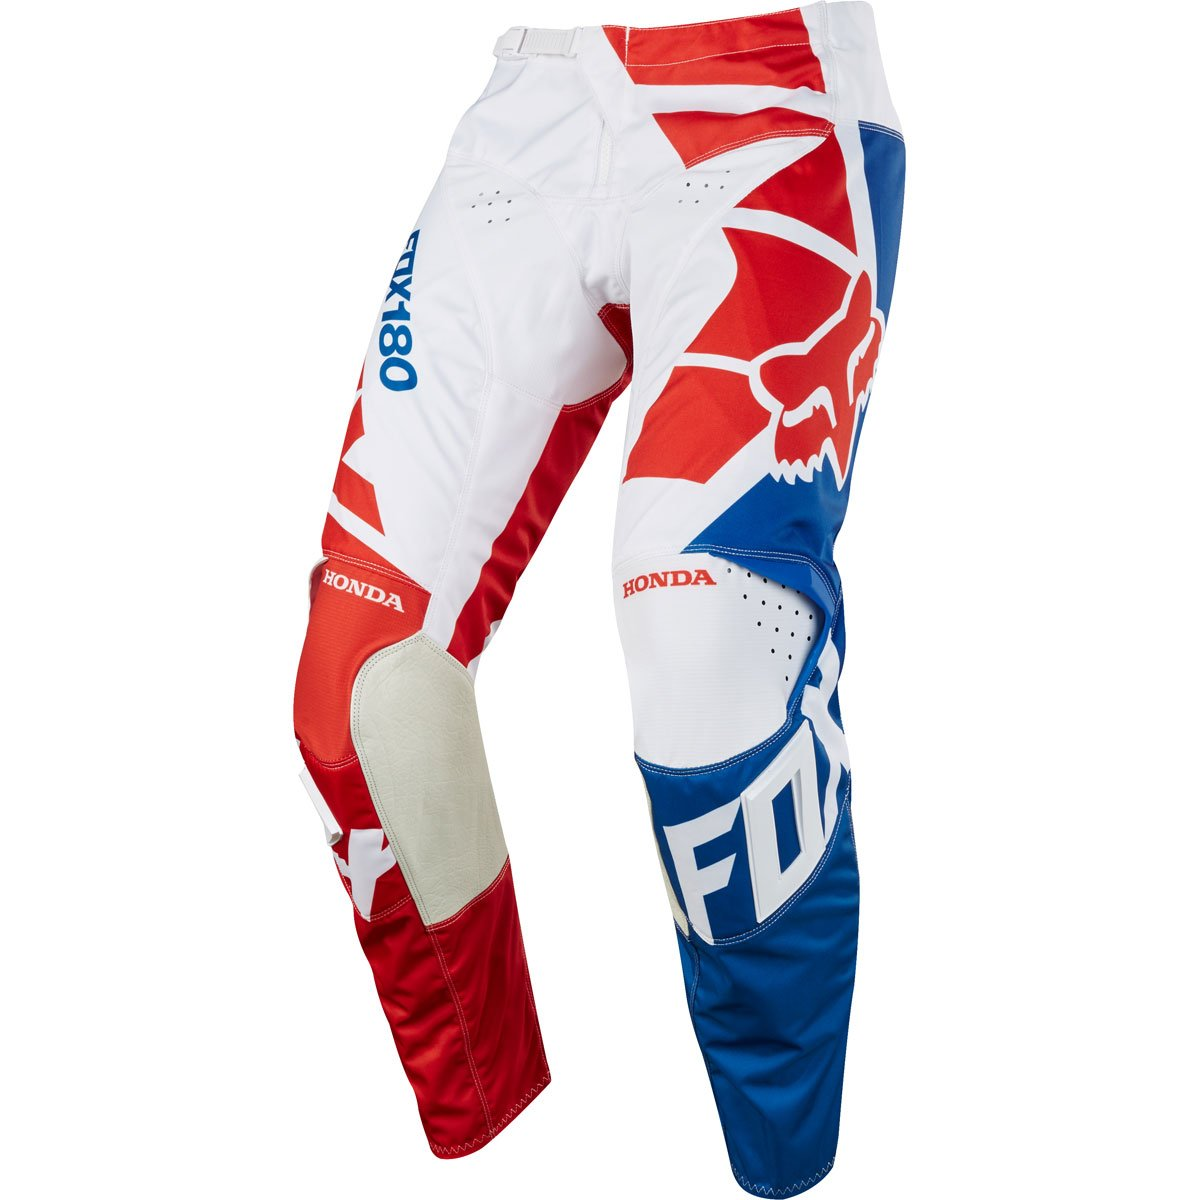 Fox Racing 2018 180 HONDA PANT RED- 36